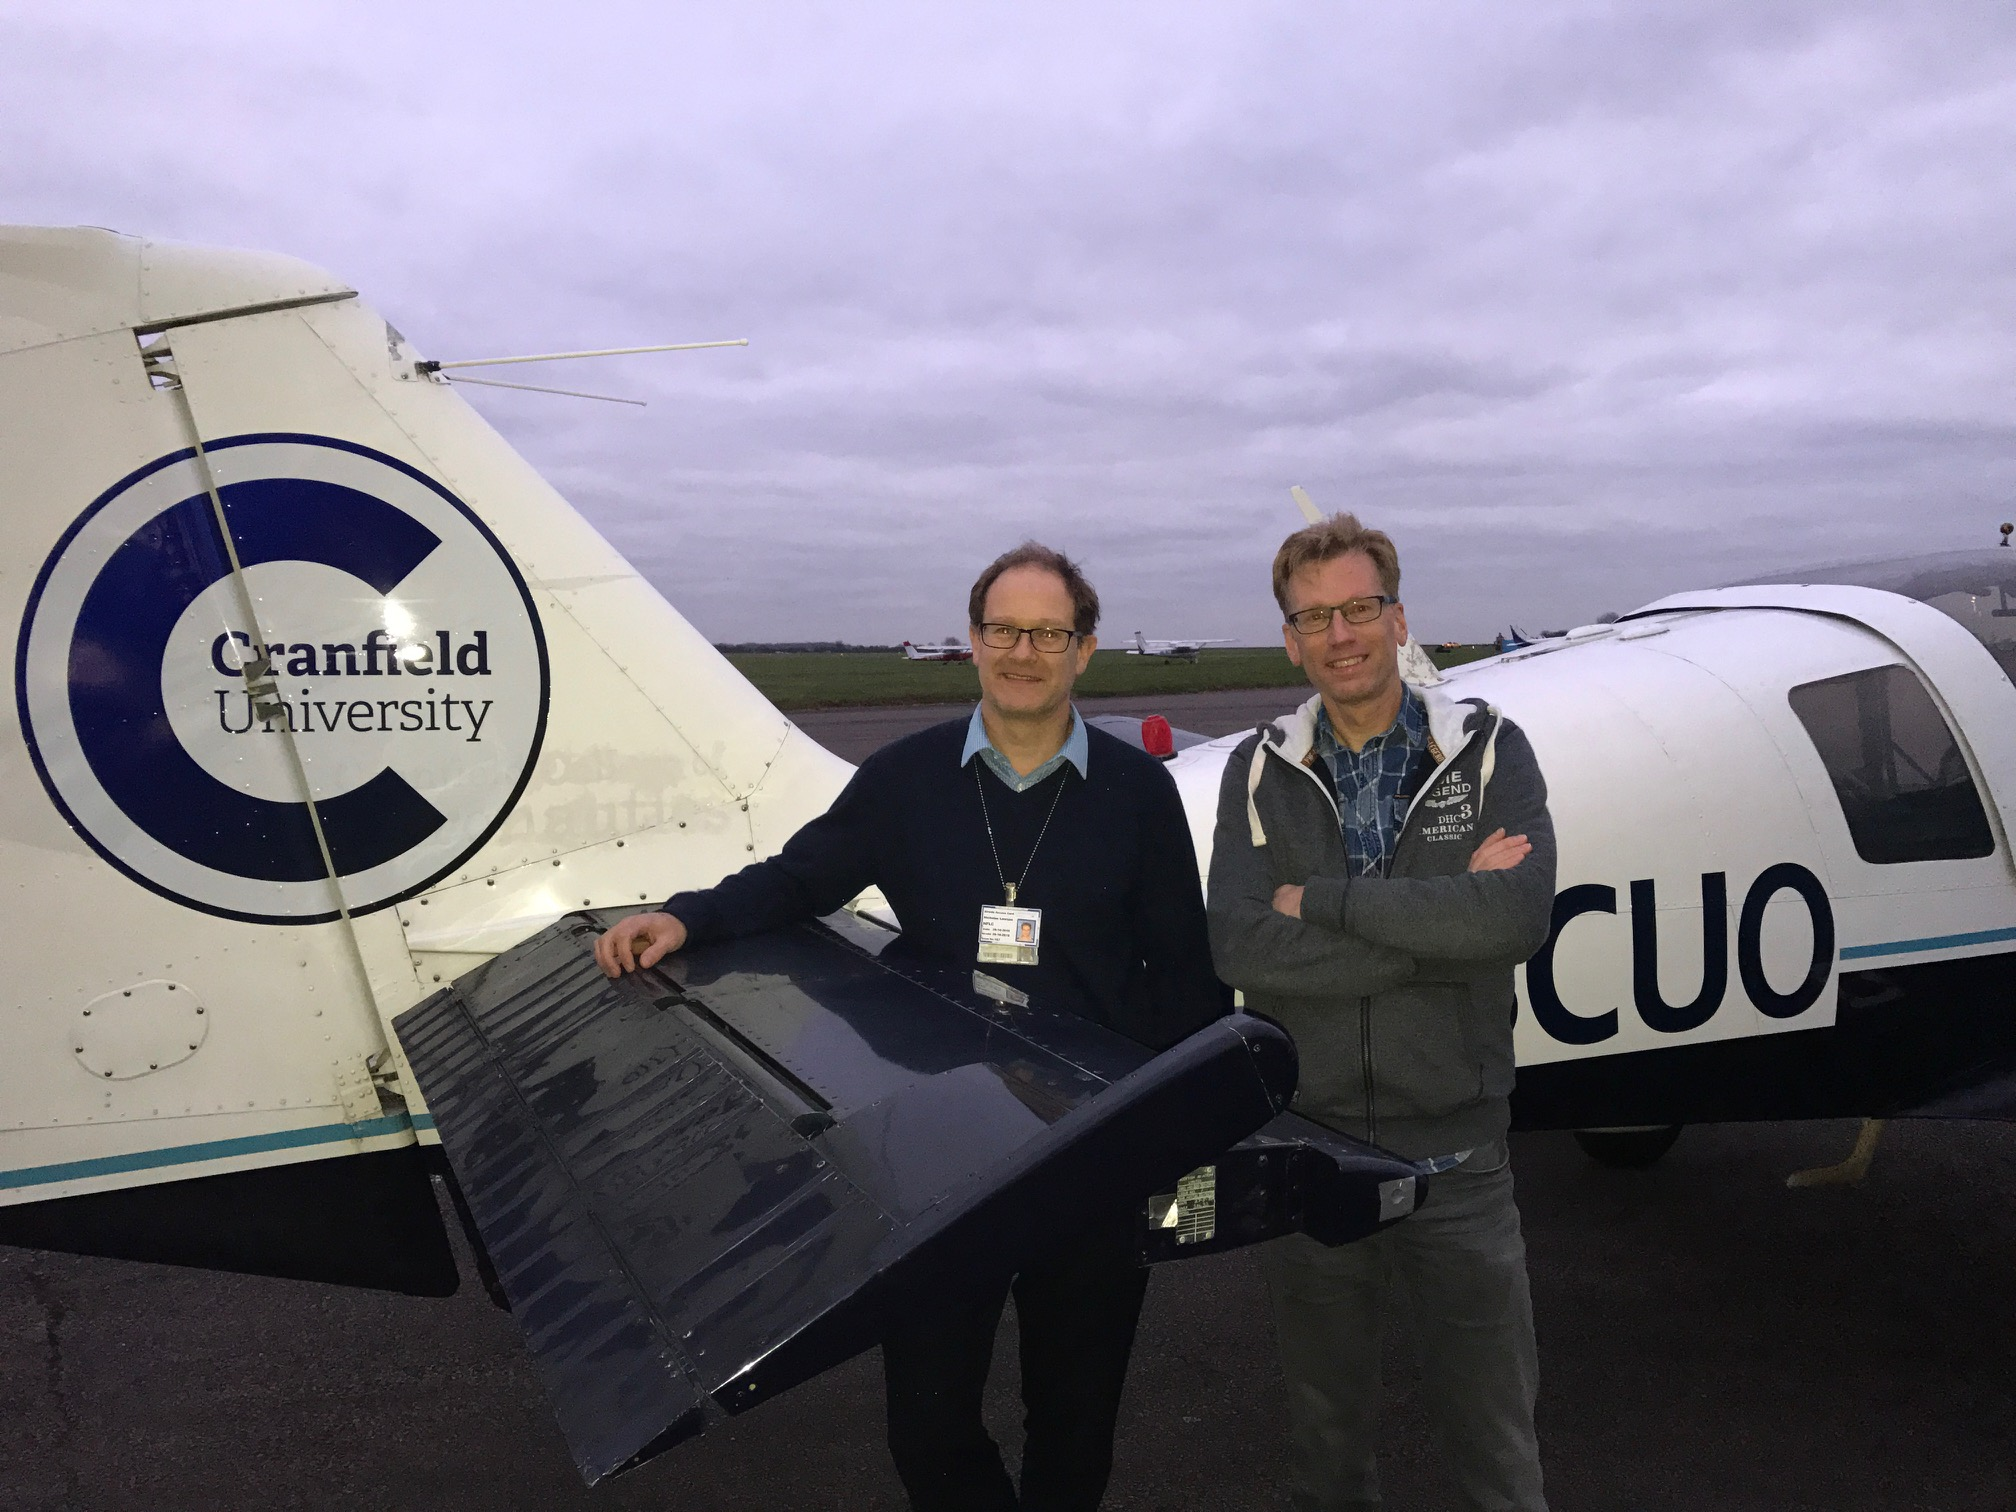 Professor Nick Lawson and Professor Eric Groen at Cranfield University